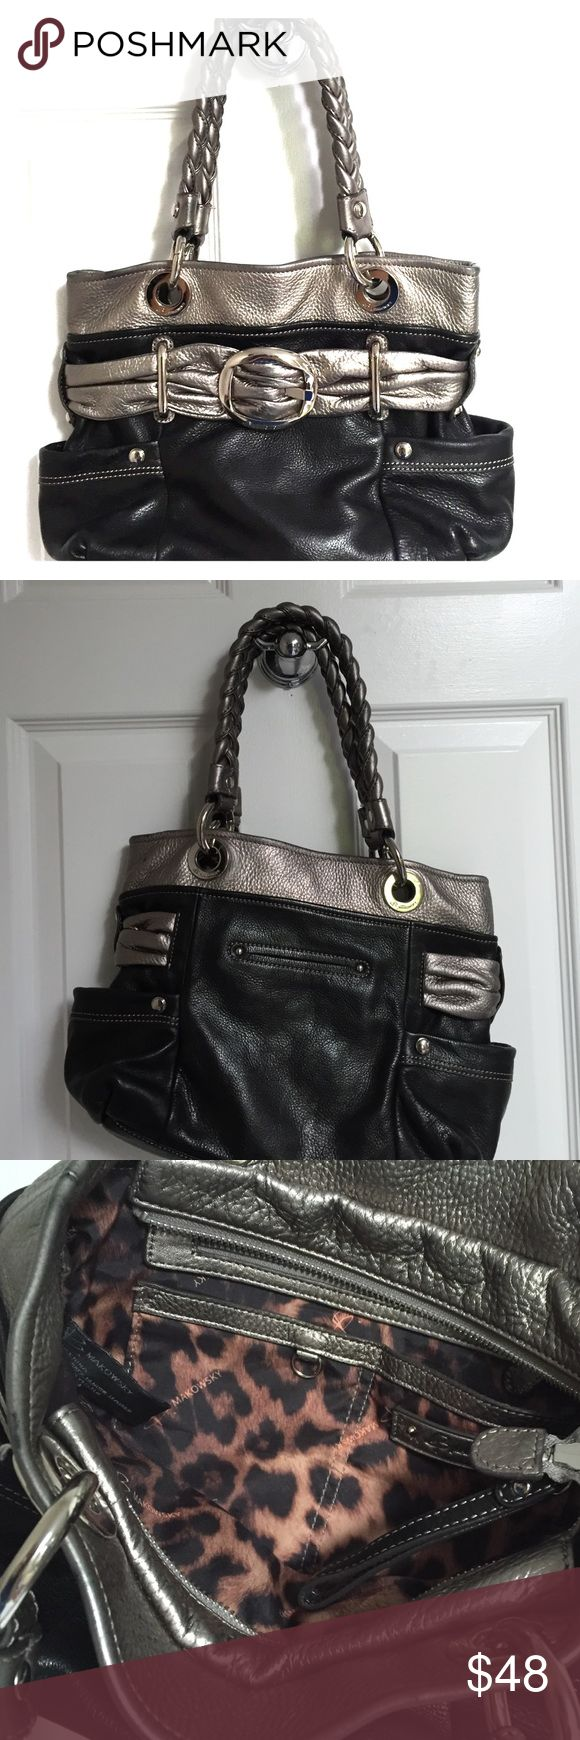 B Makowsky leather black and silver shoulder bag Cute black and silver bag with silver hardware.  Good for winter wear.  Two side pockets and one phone pocket in back.  On the inside is a zippered pocket.  Also can zip up.  I never zipped up though.  Euc b. makowsky Bags Shoulder Bags